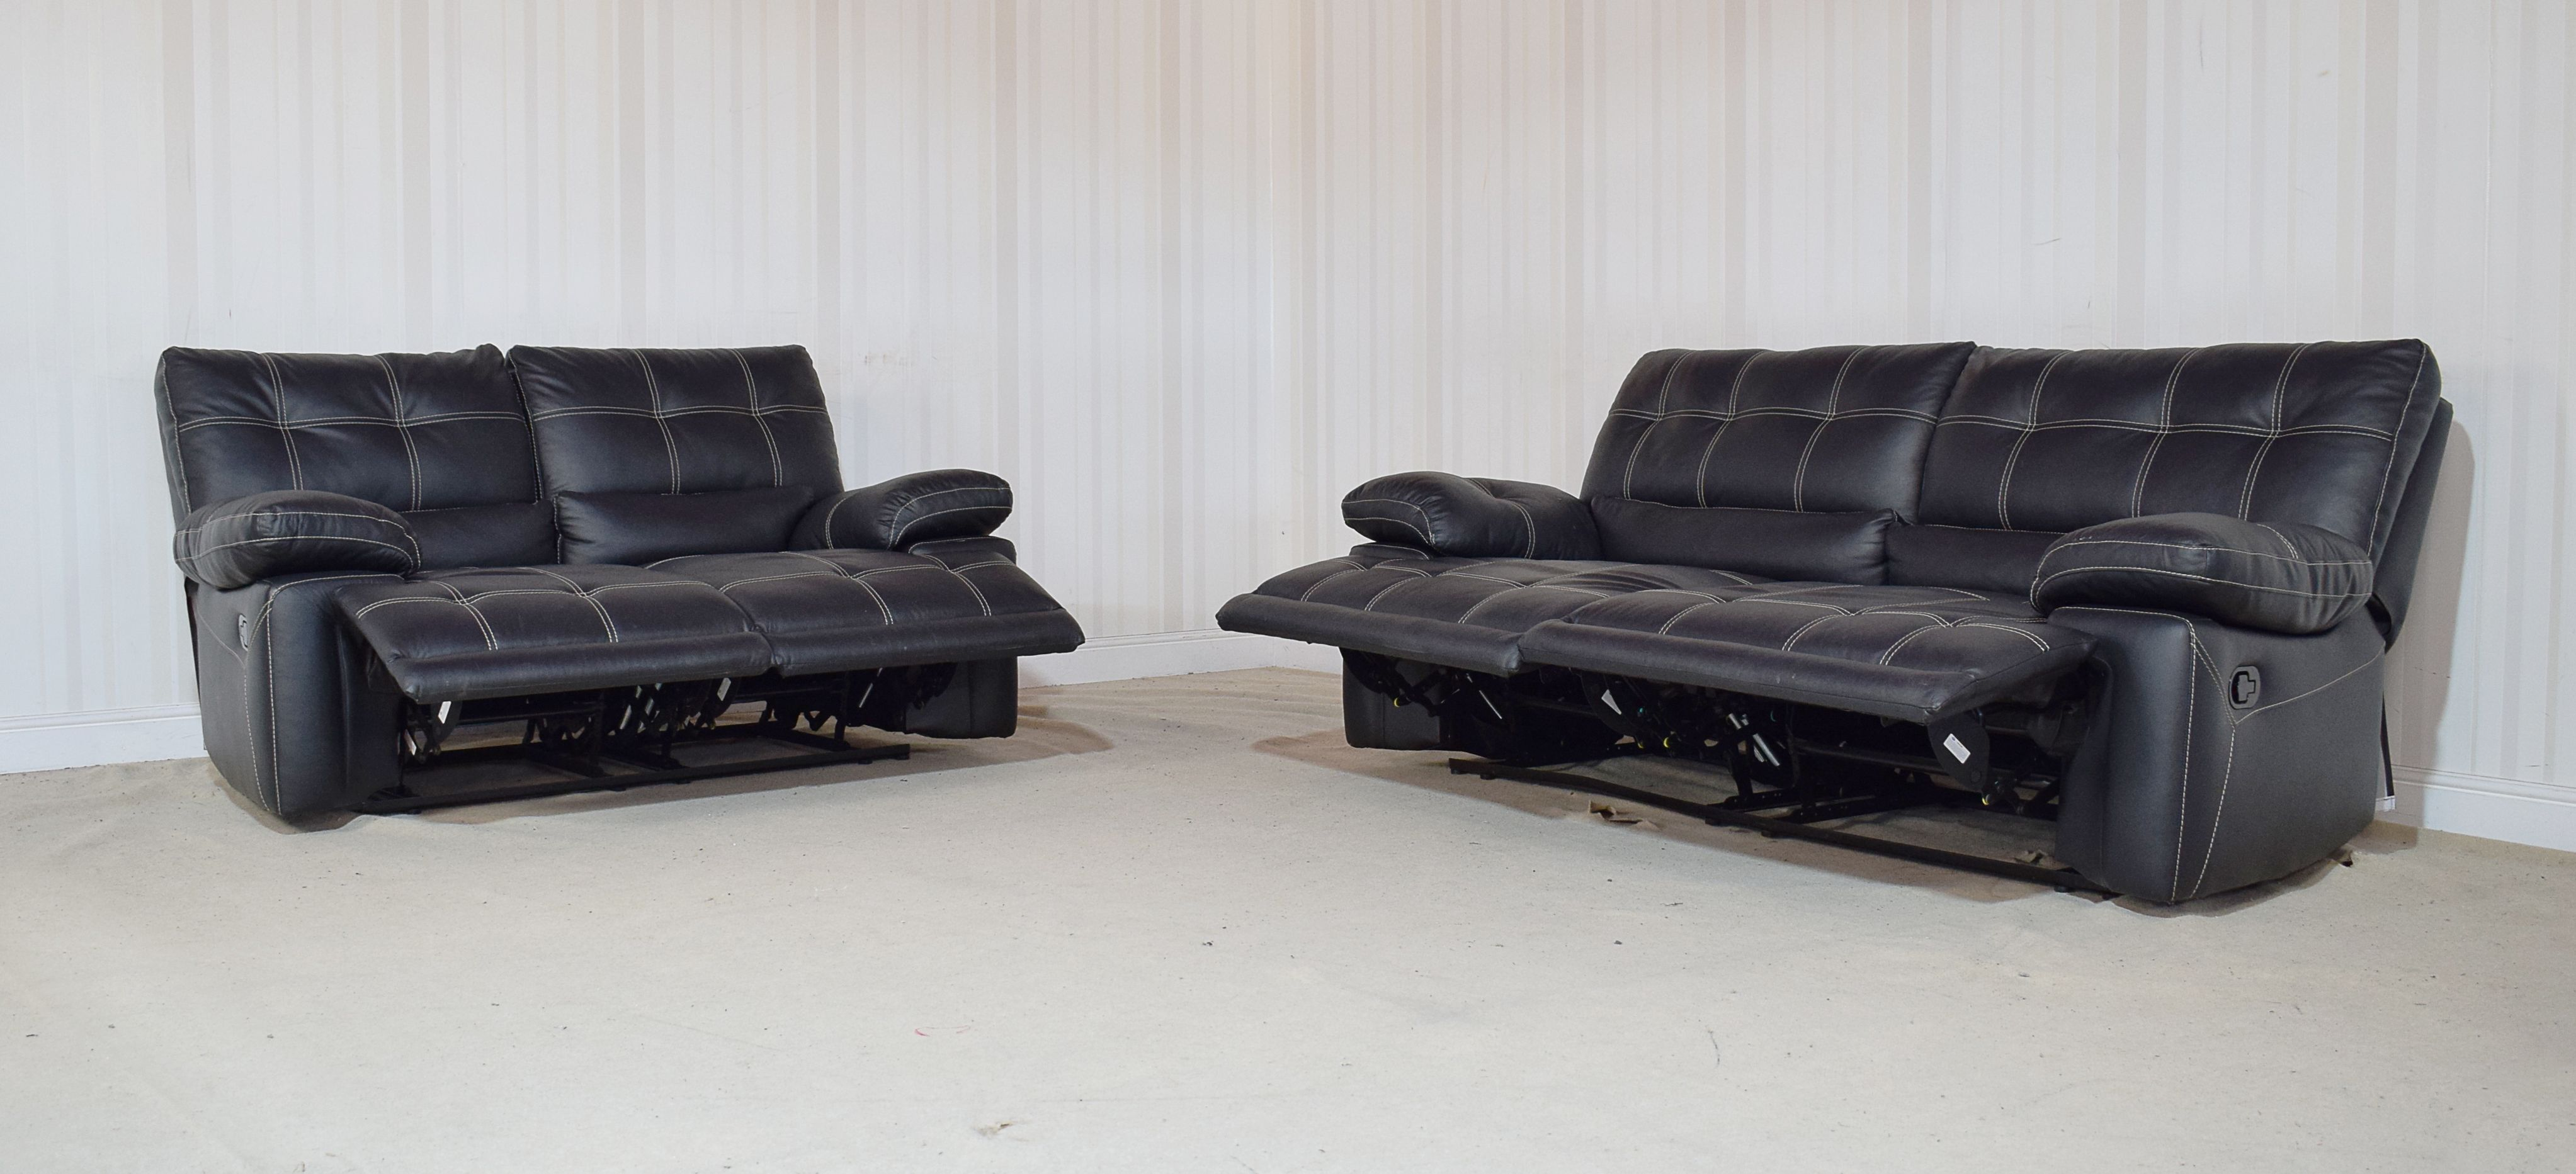 Leather Black G Max manual recliner 3 seater + 2 seater sofas (8) in ...